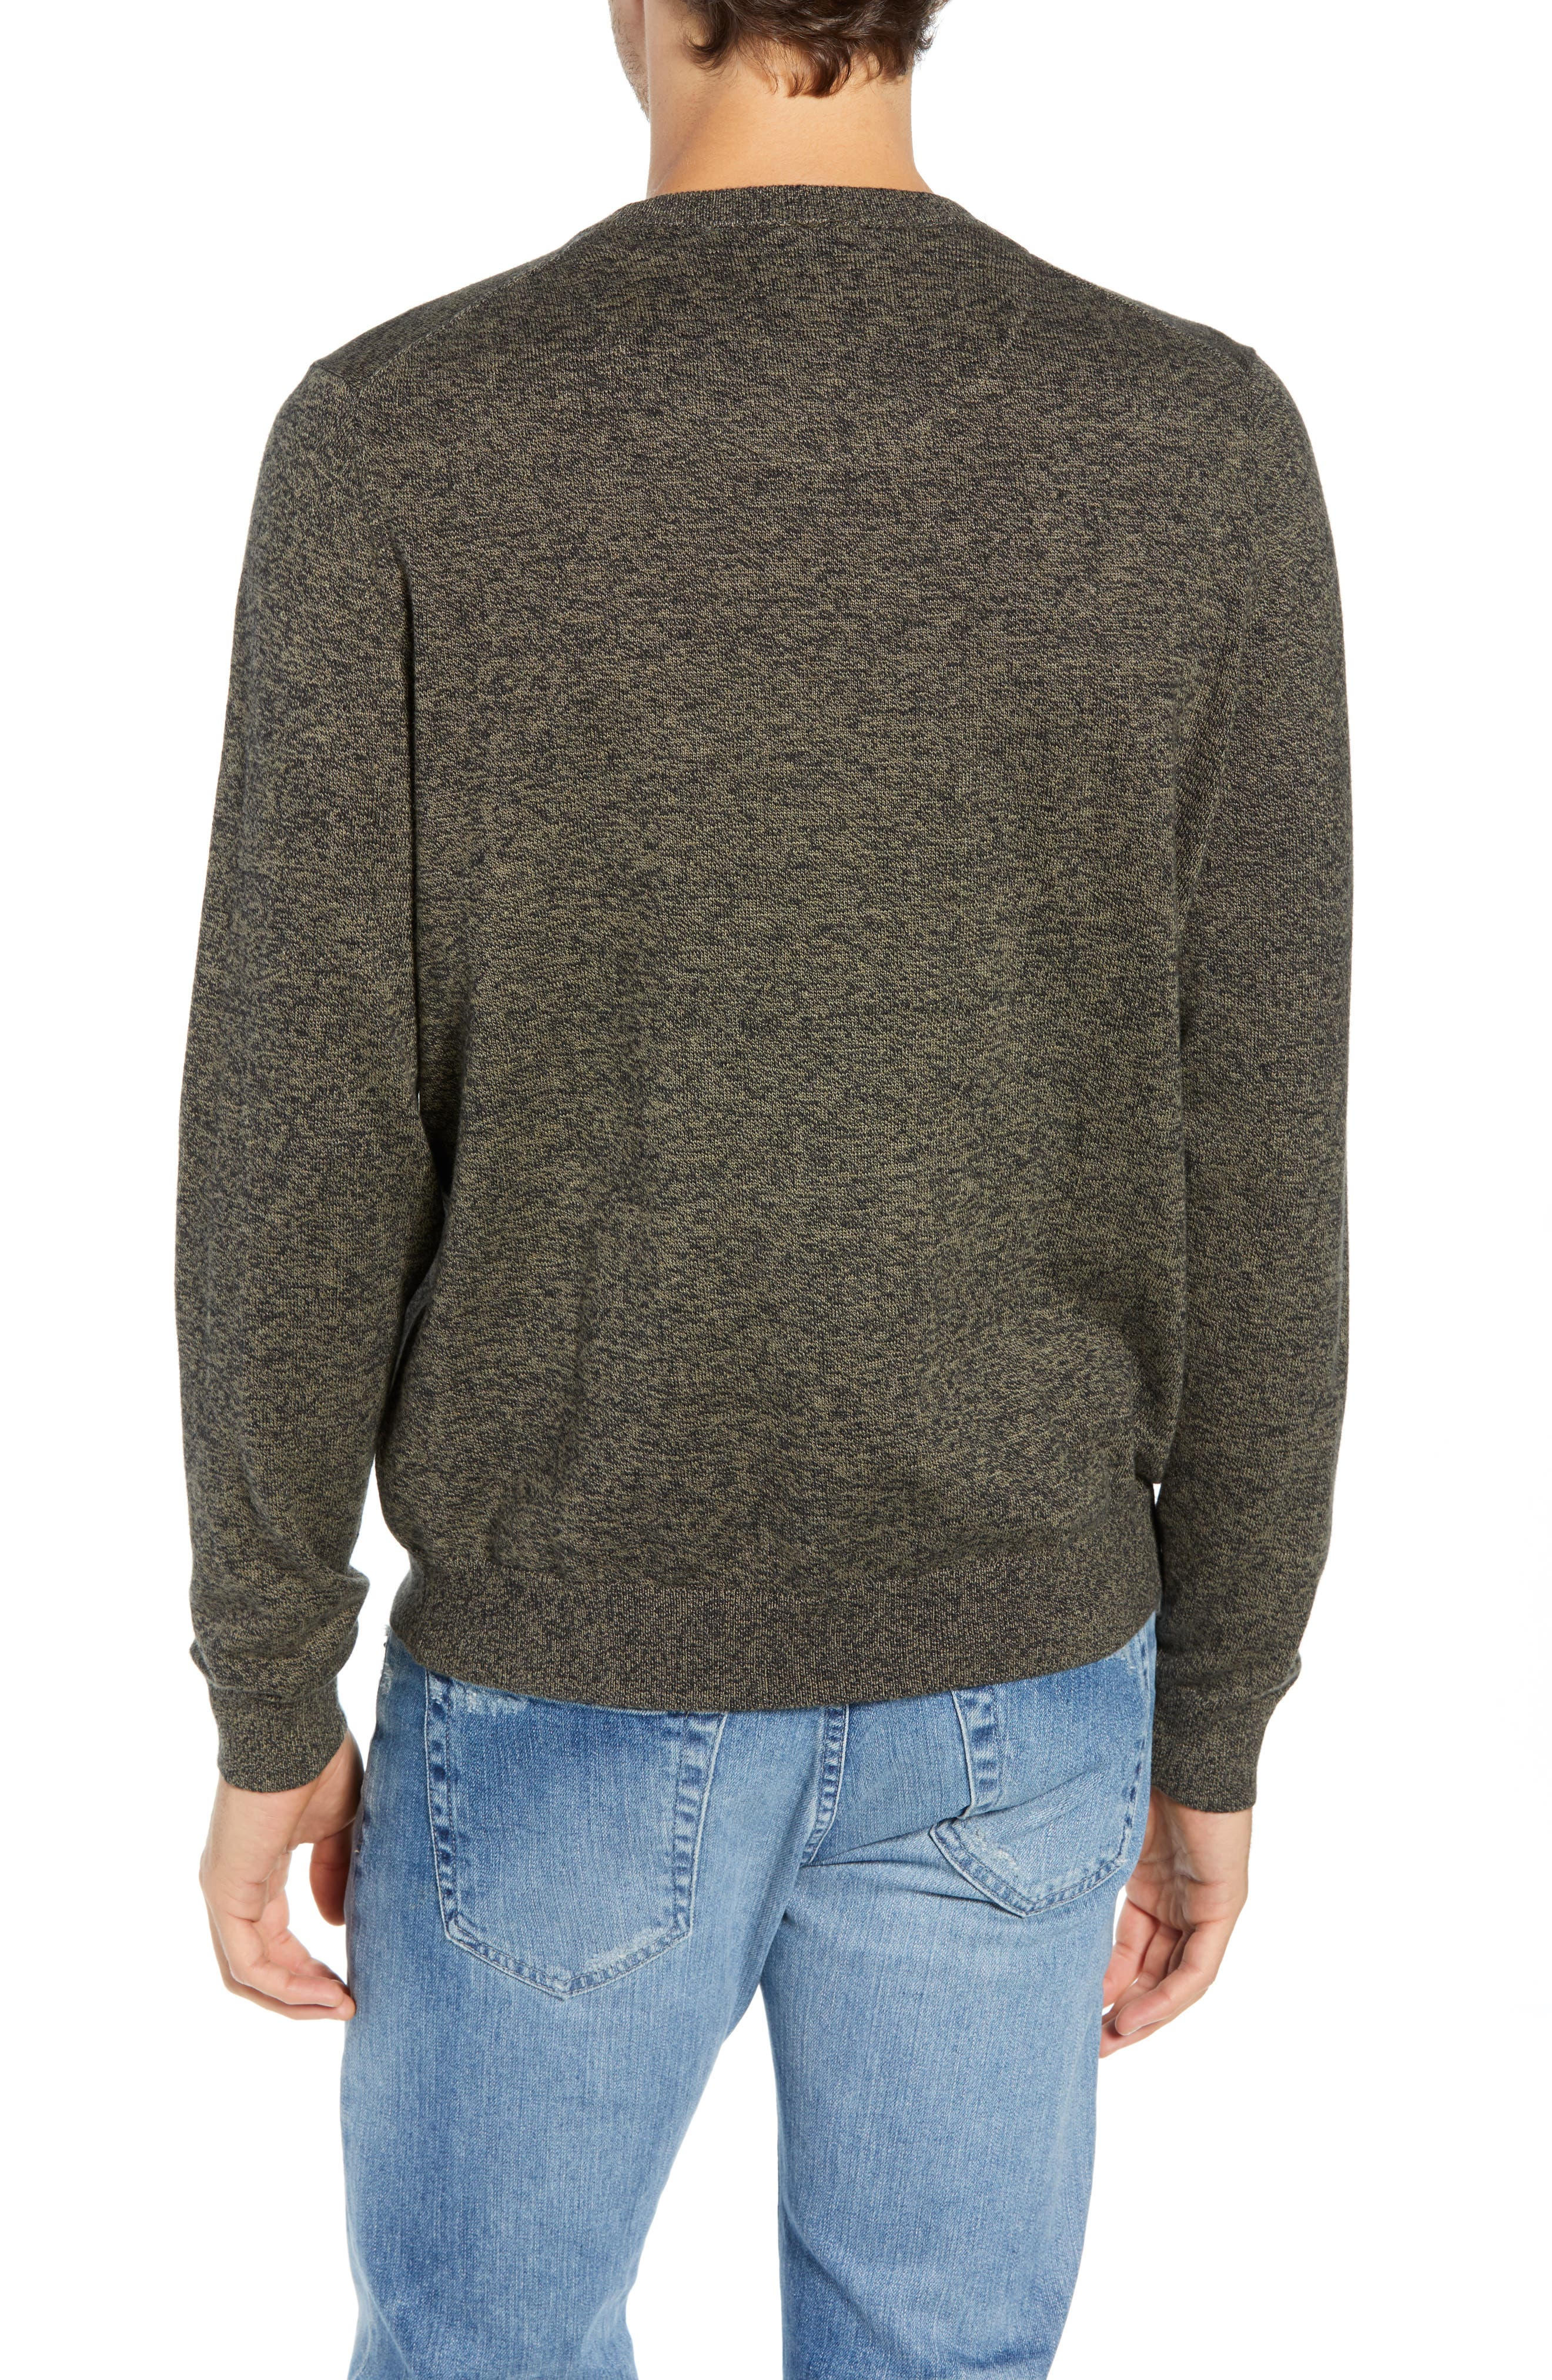 Cotton & Cashmere V-Neck Sweater,                             Alternate thumbnail 2, color,                             GREEN FOREST MARL